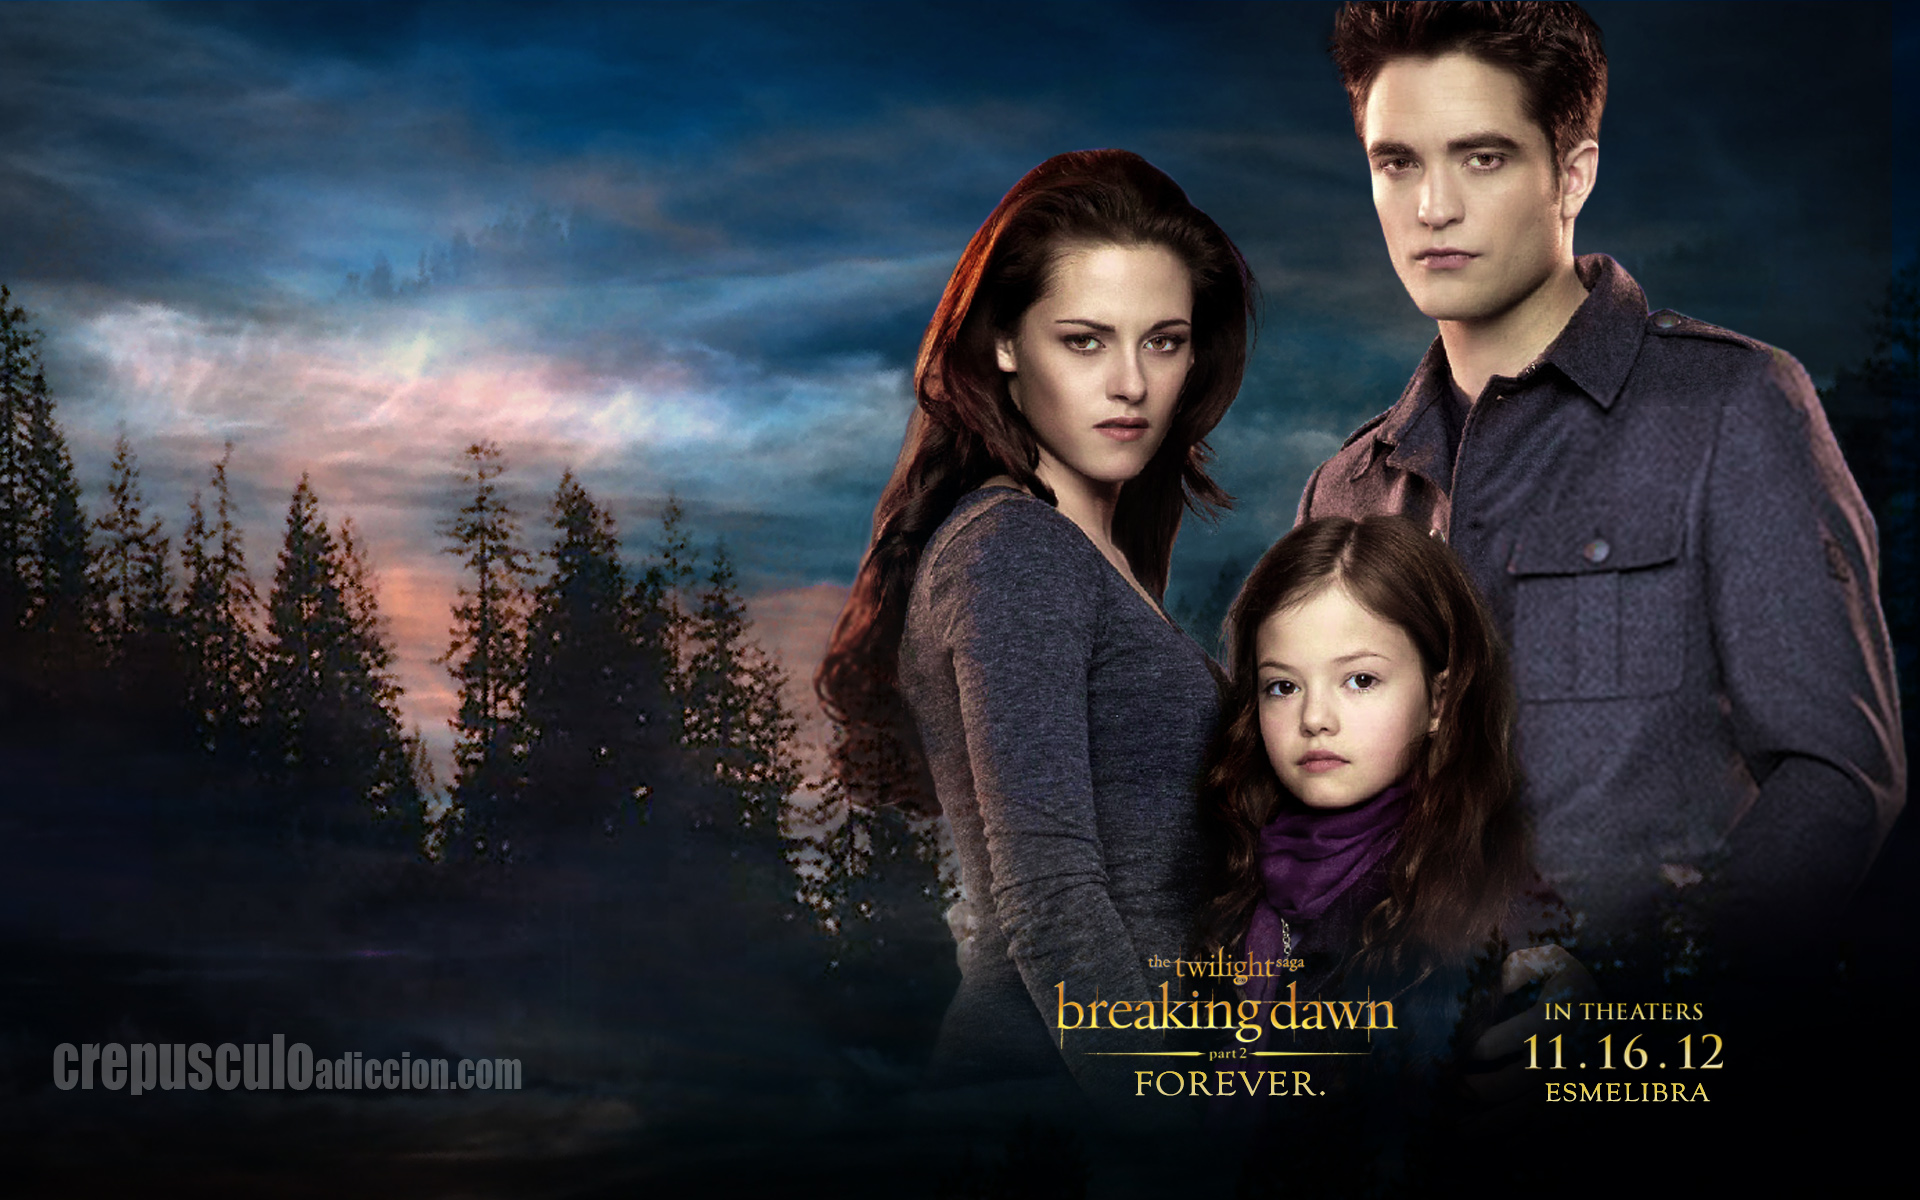 The Twilight Saga Brea...